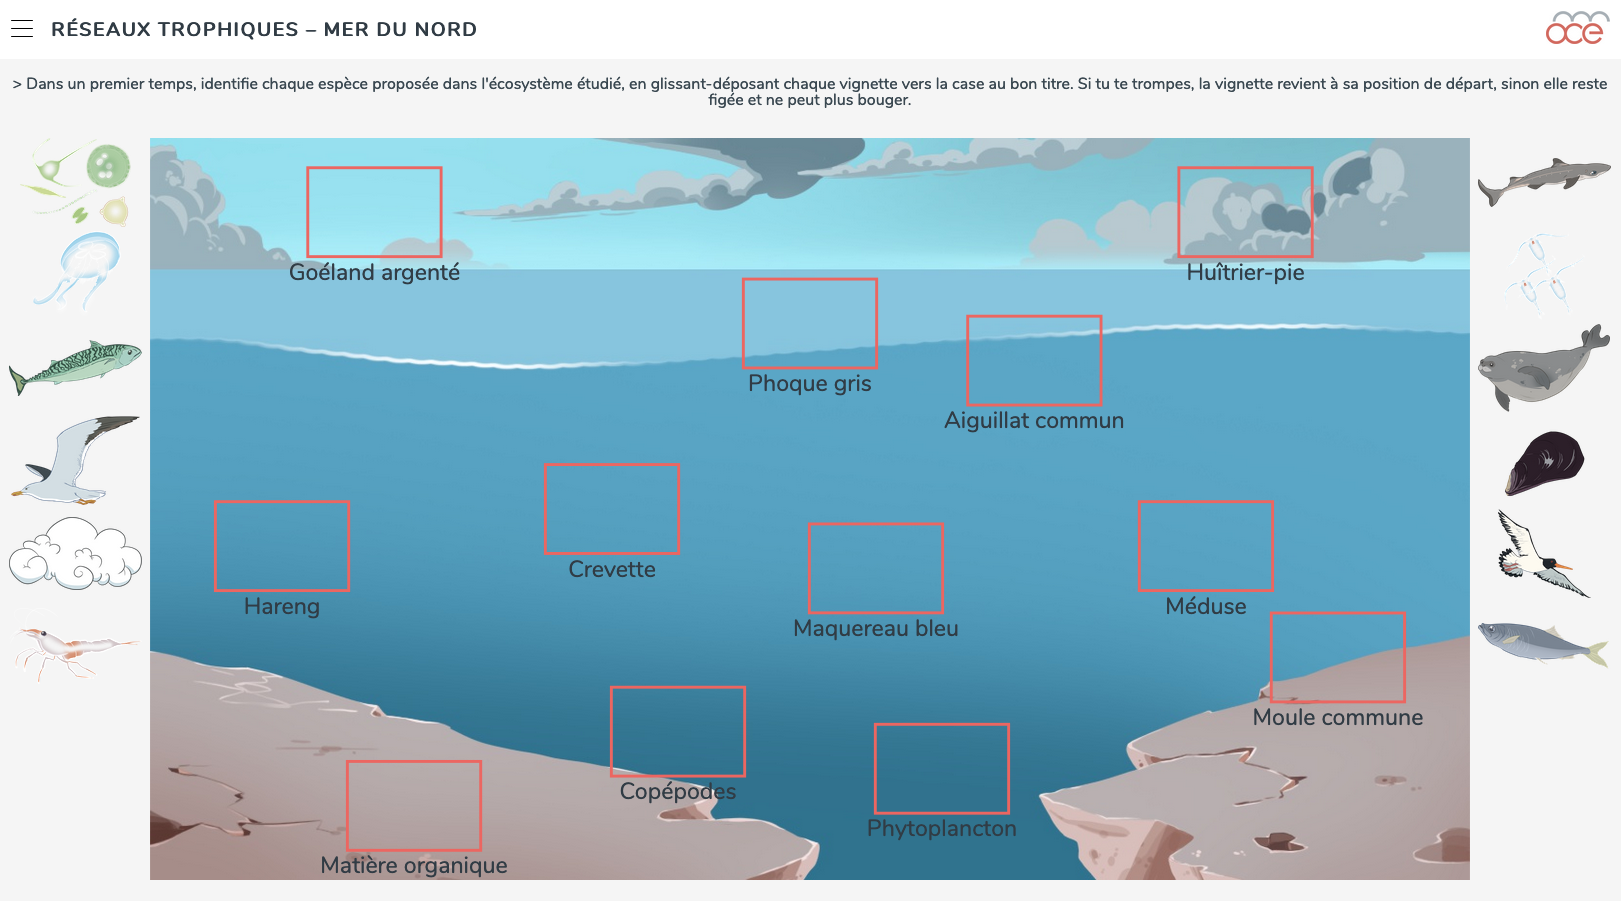 north sea food webs image